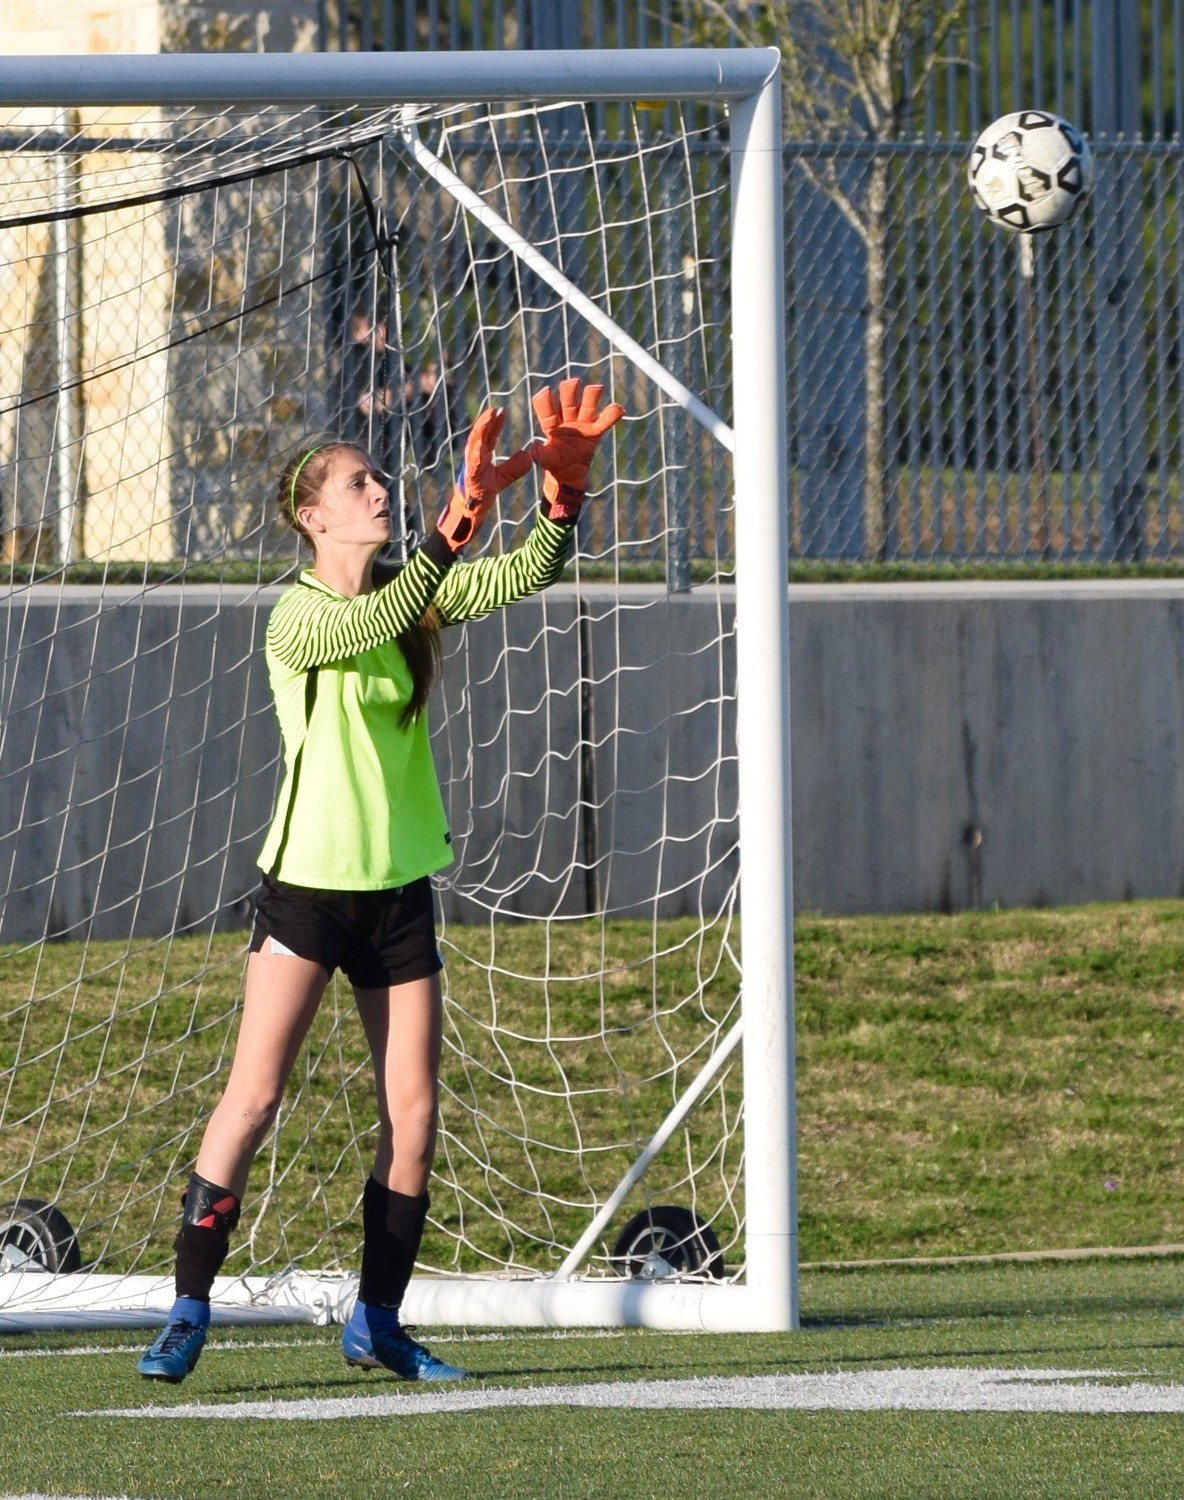 Erin Clawson and Vista Ridge lost to San Antonio Johnson 3-1 in Dripping Springs on Thursday night.